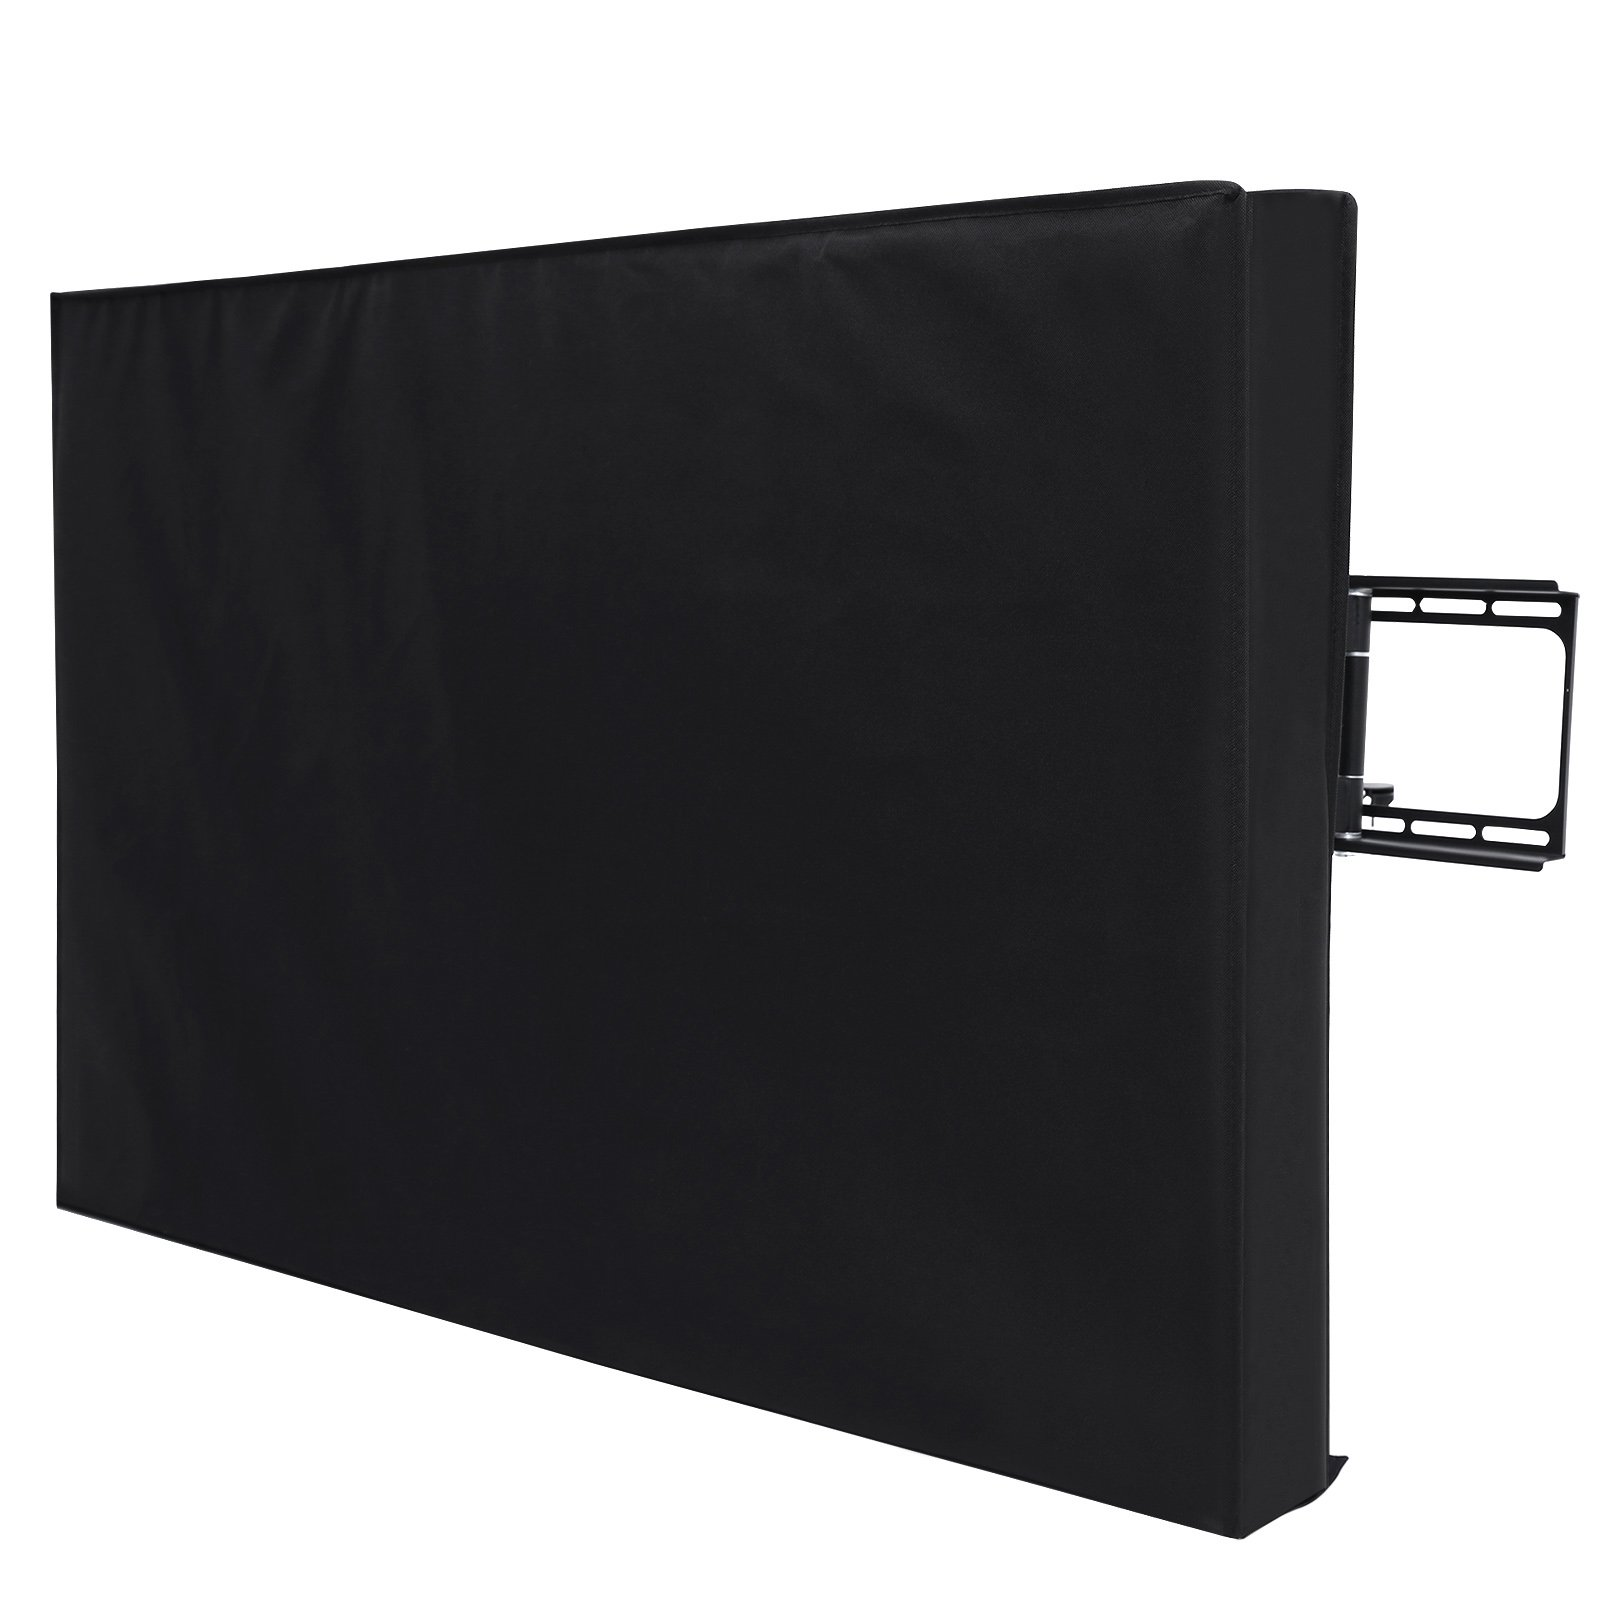 SONGMICS Outdoor TV Cover for 40- 43 Inch Wall Mounts TV, Weatherproof and Dustproof Black UGTR42B by SONGMICS